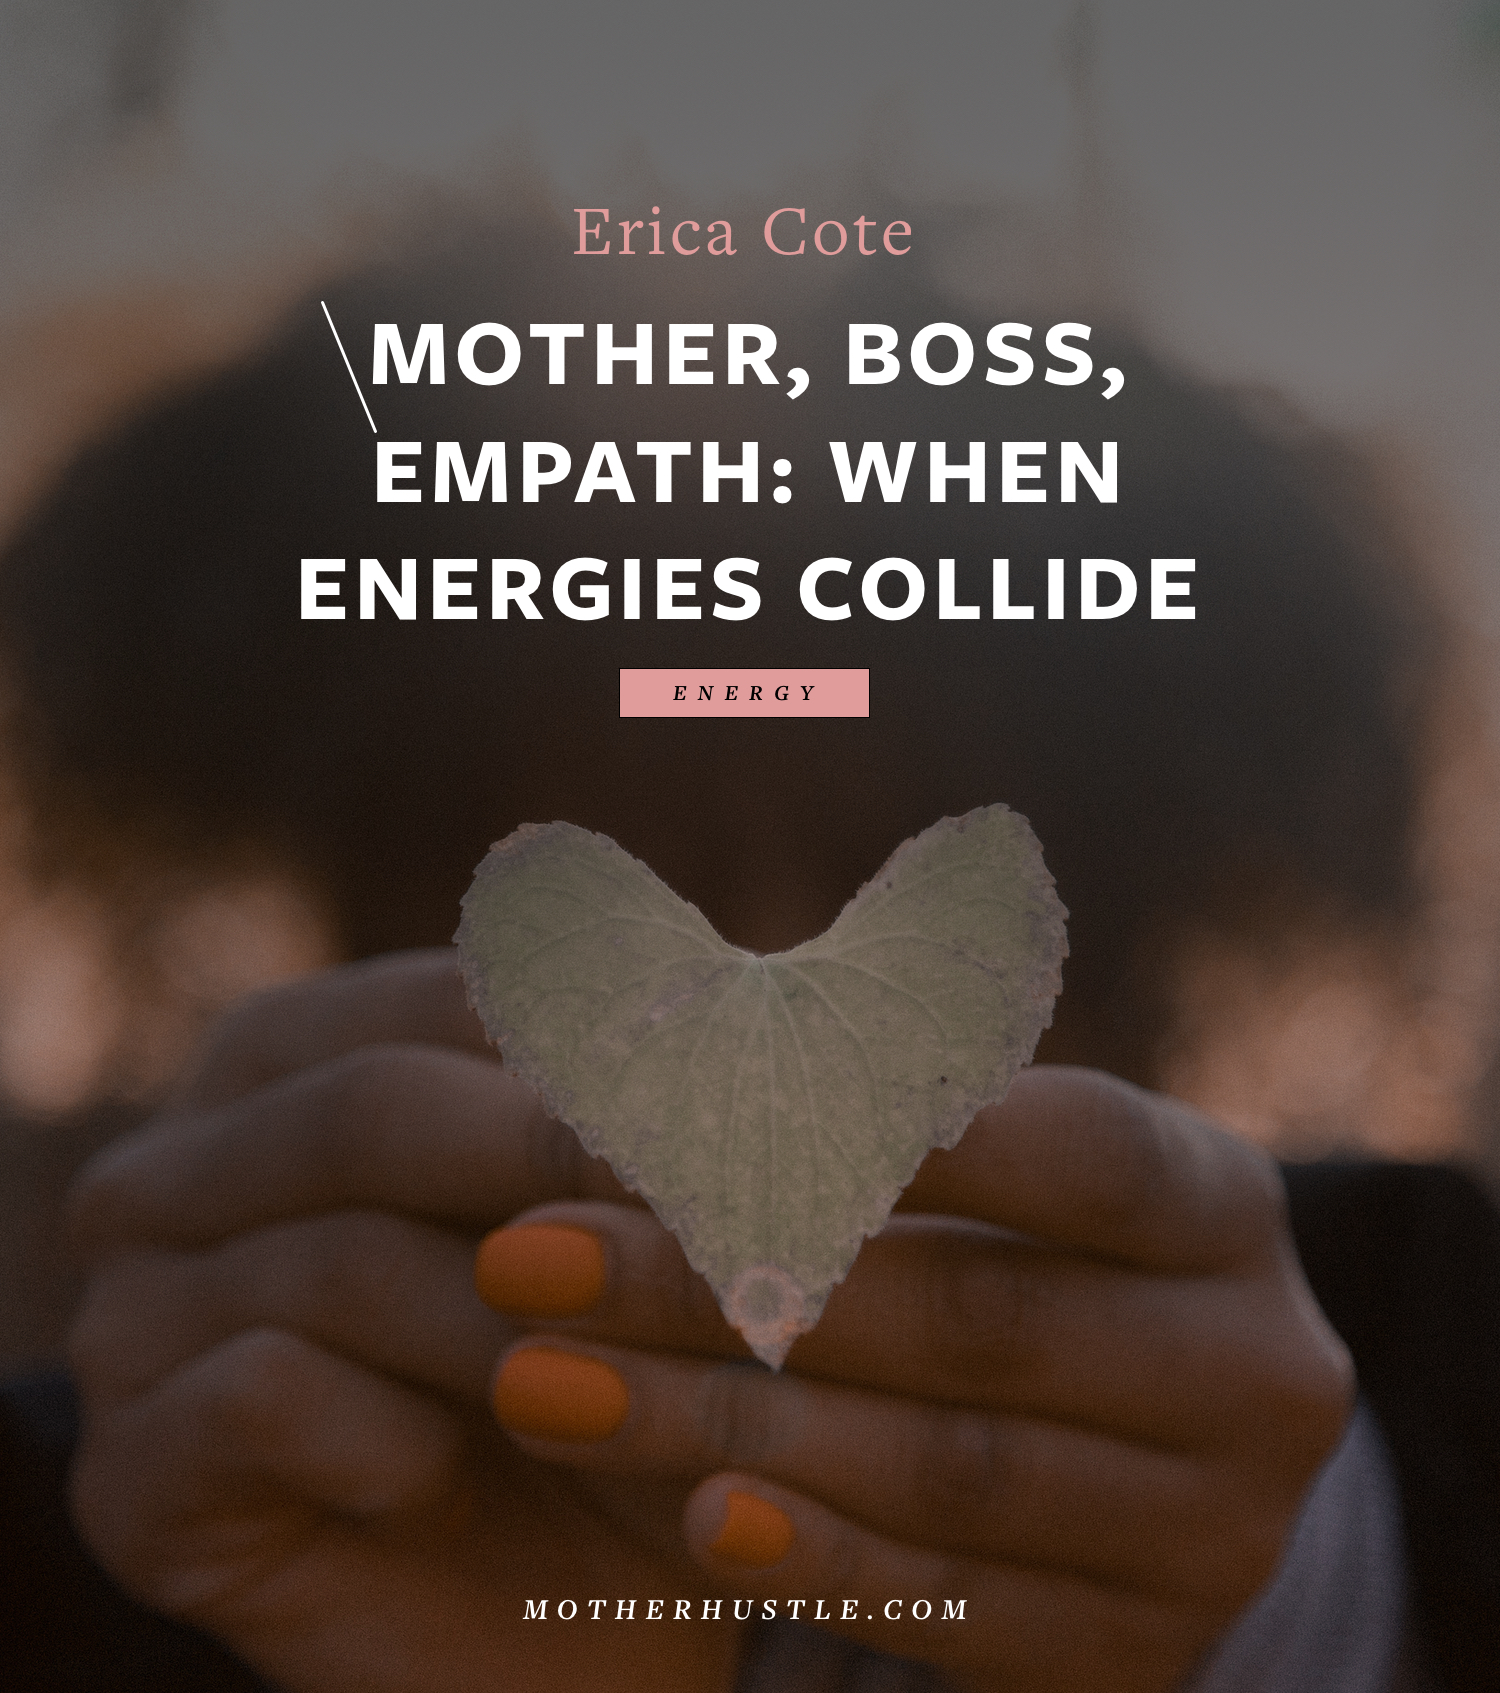 Mother, Boss, Empath- When Energies Collide - By Erica Cote for MotherHustle